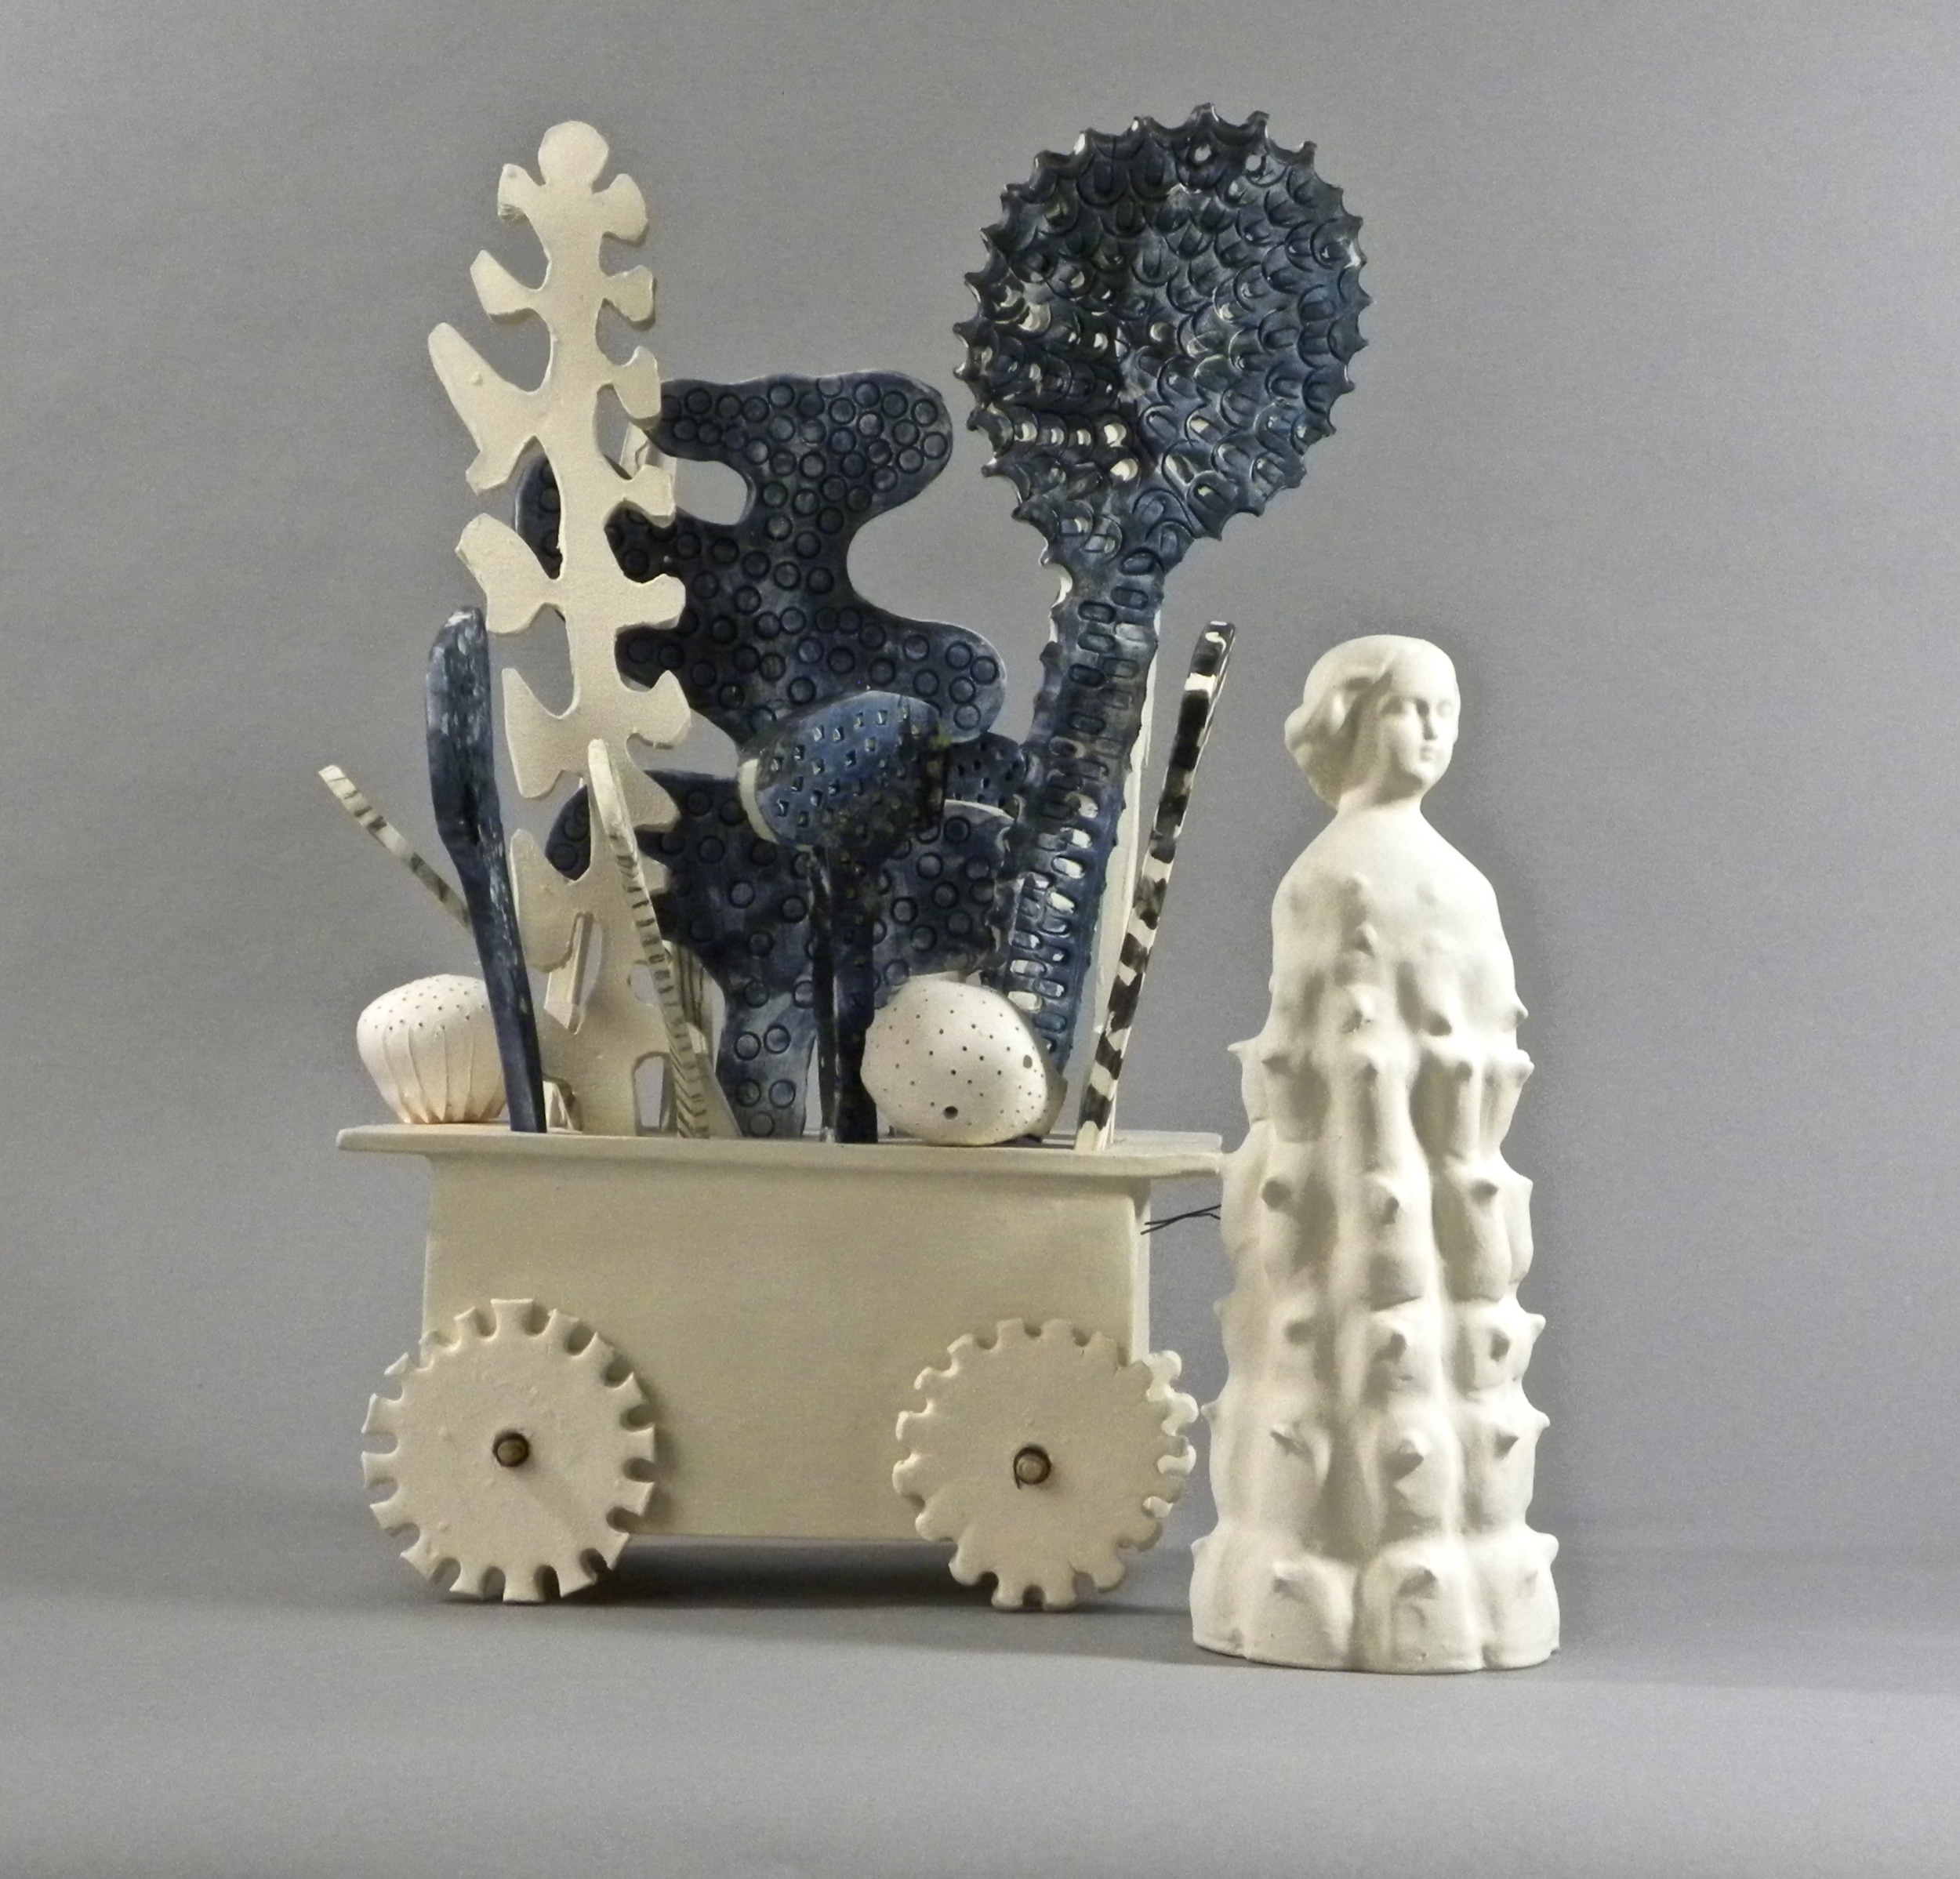 %22Chariots of Desire%22 Yana Goldfine 2015 porcelain and steel wire.jpg